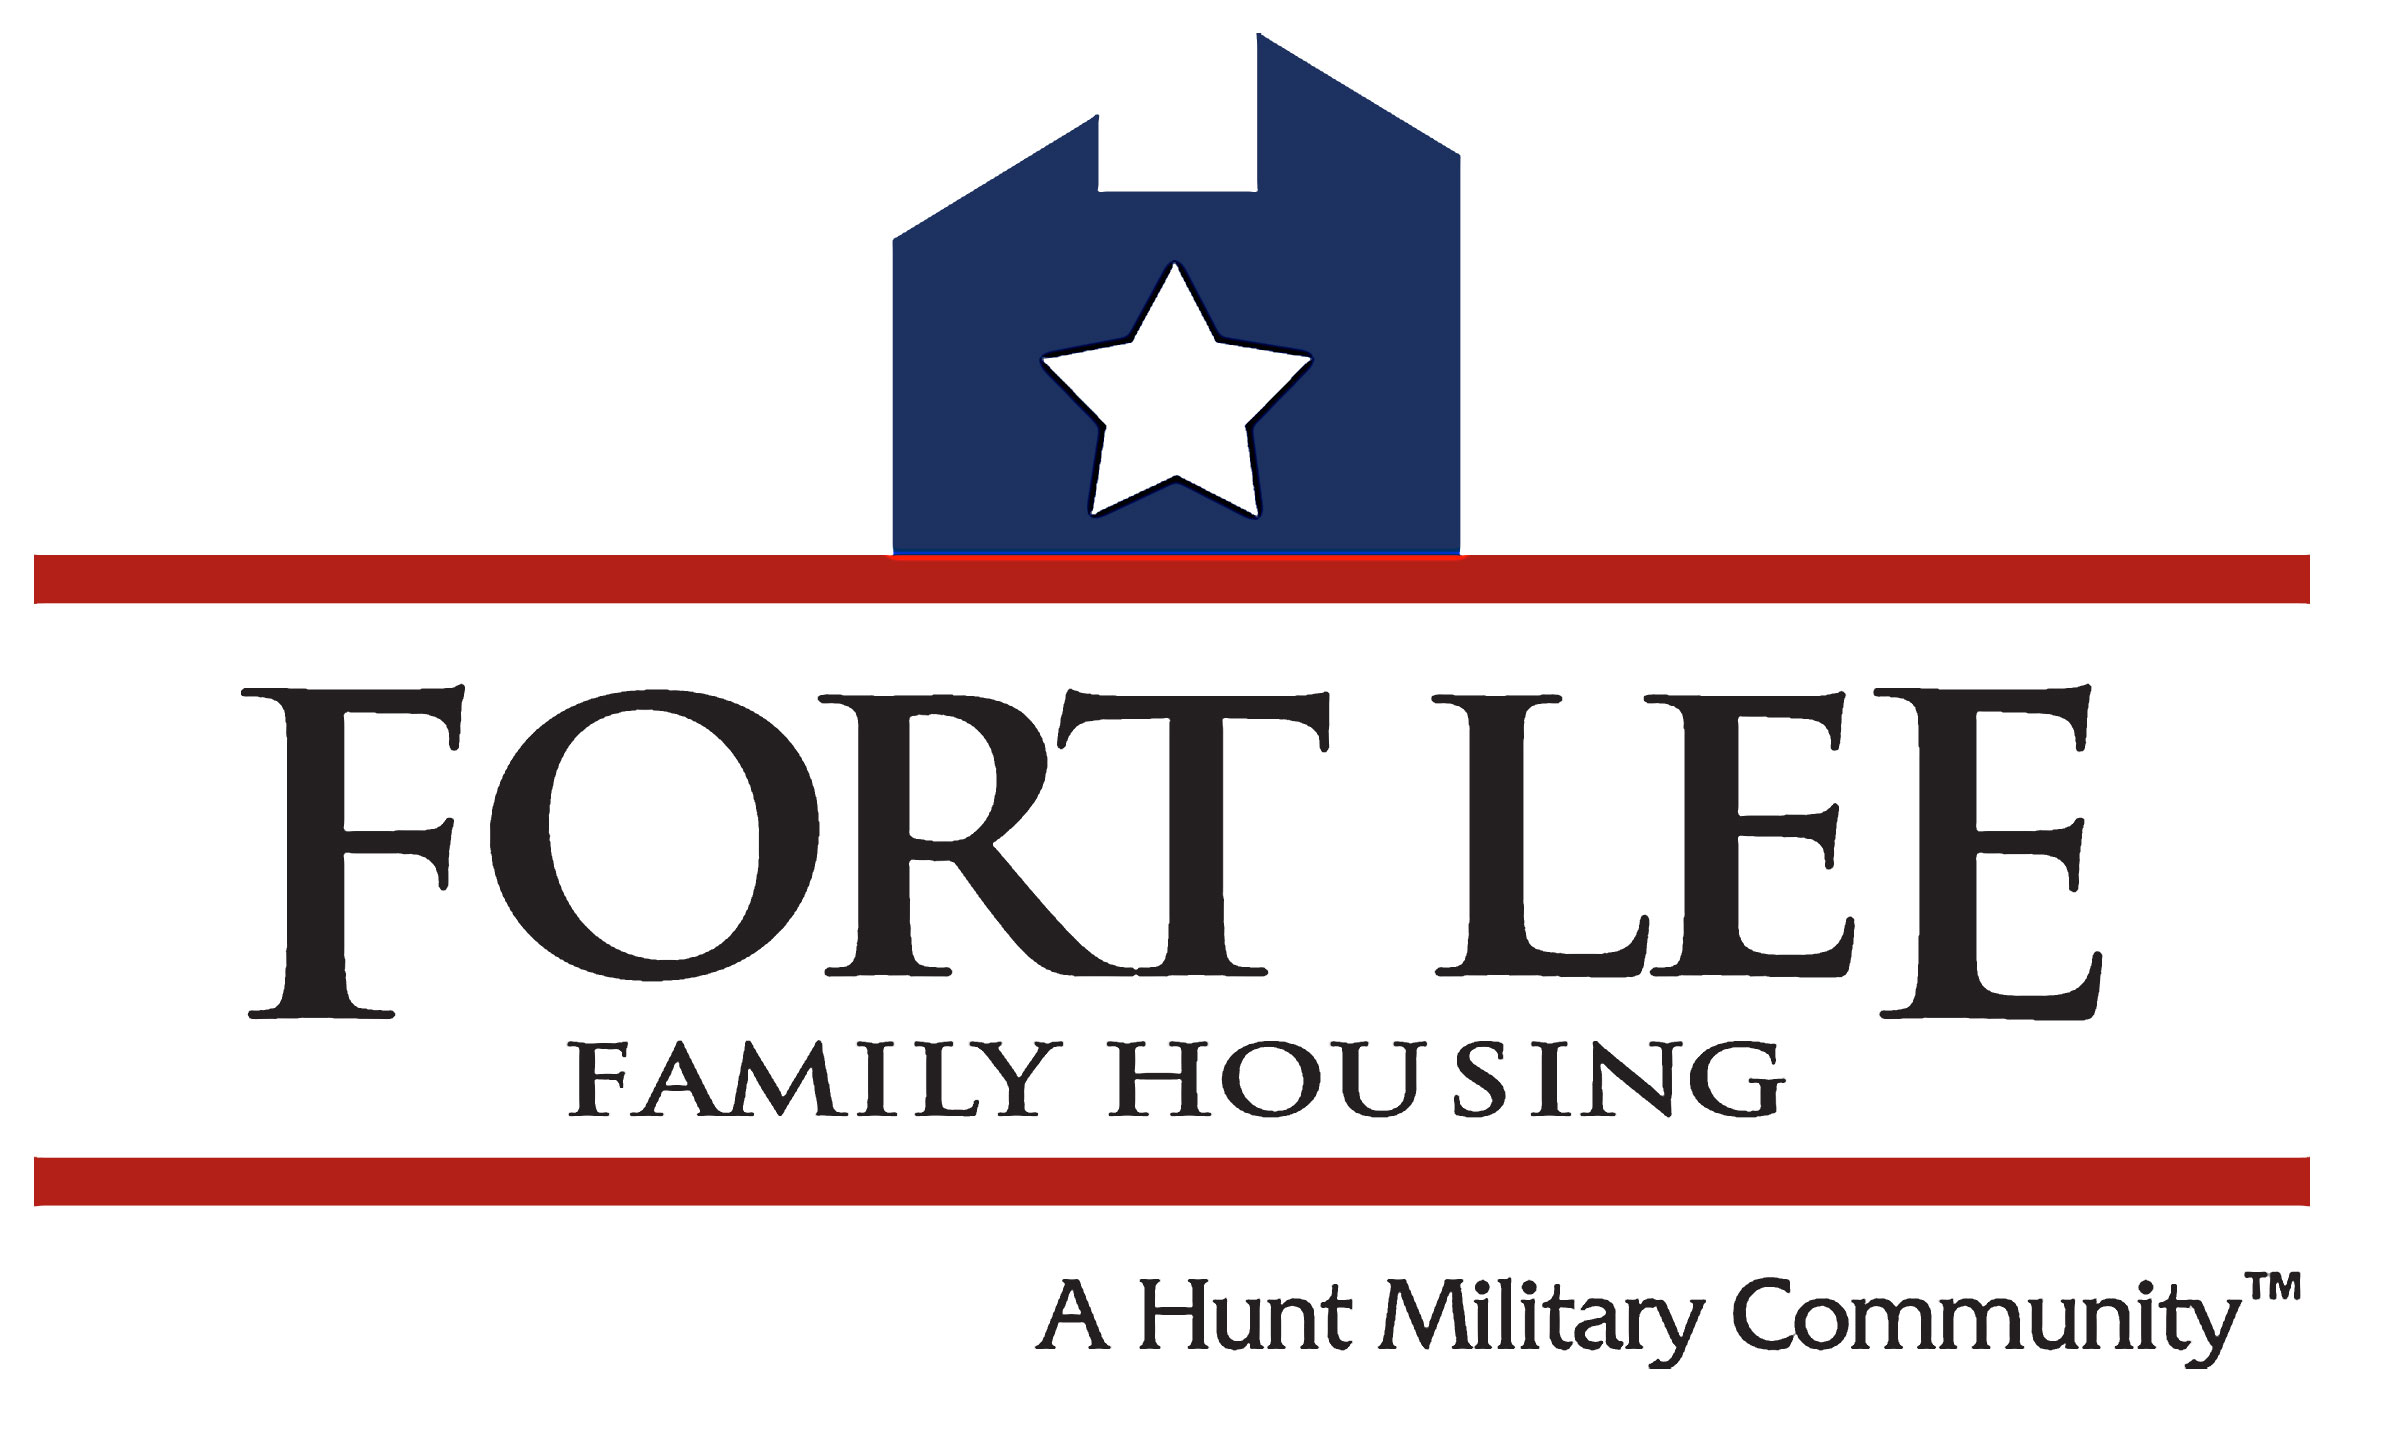 Fort_Lee_Family_Housing_Logo.jpg